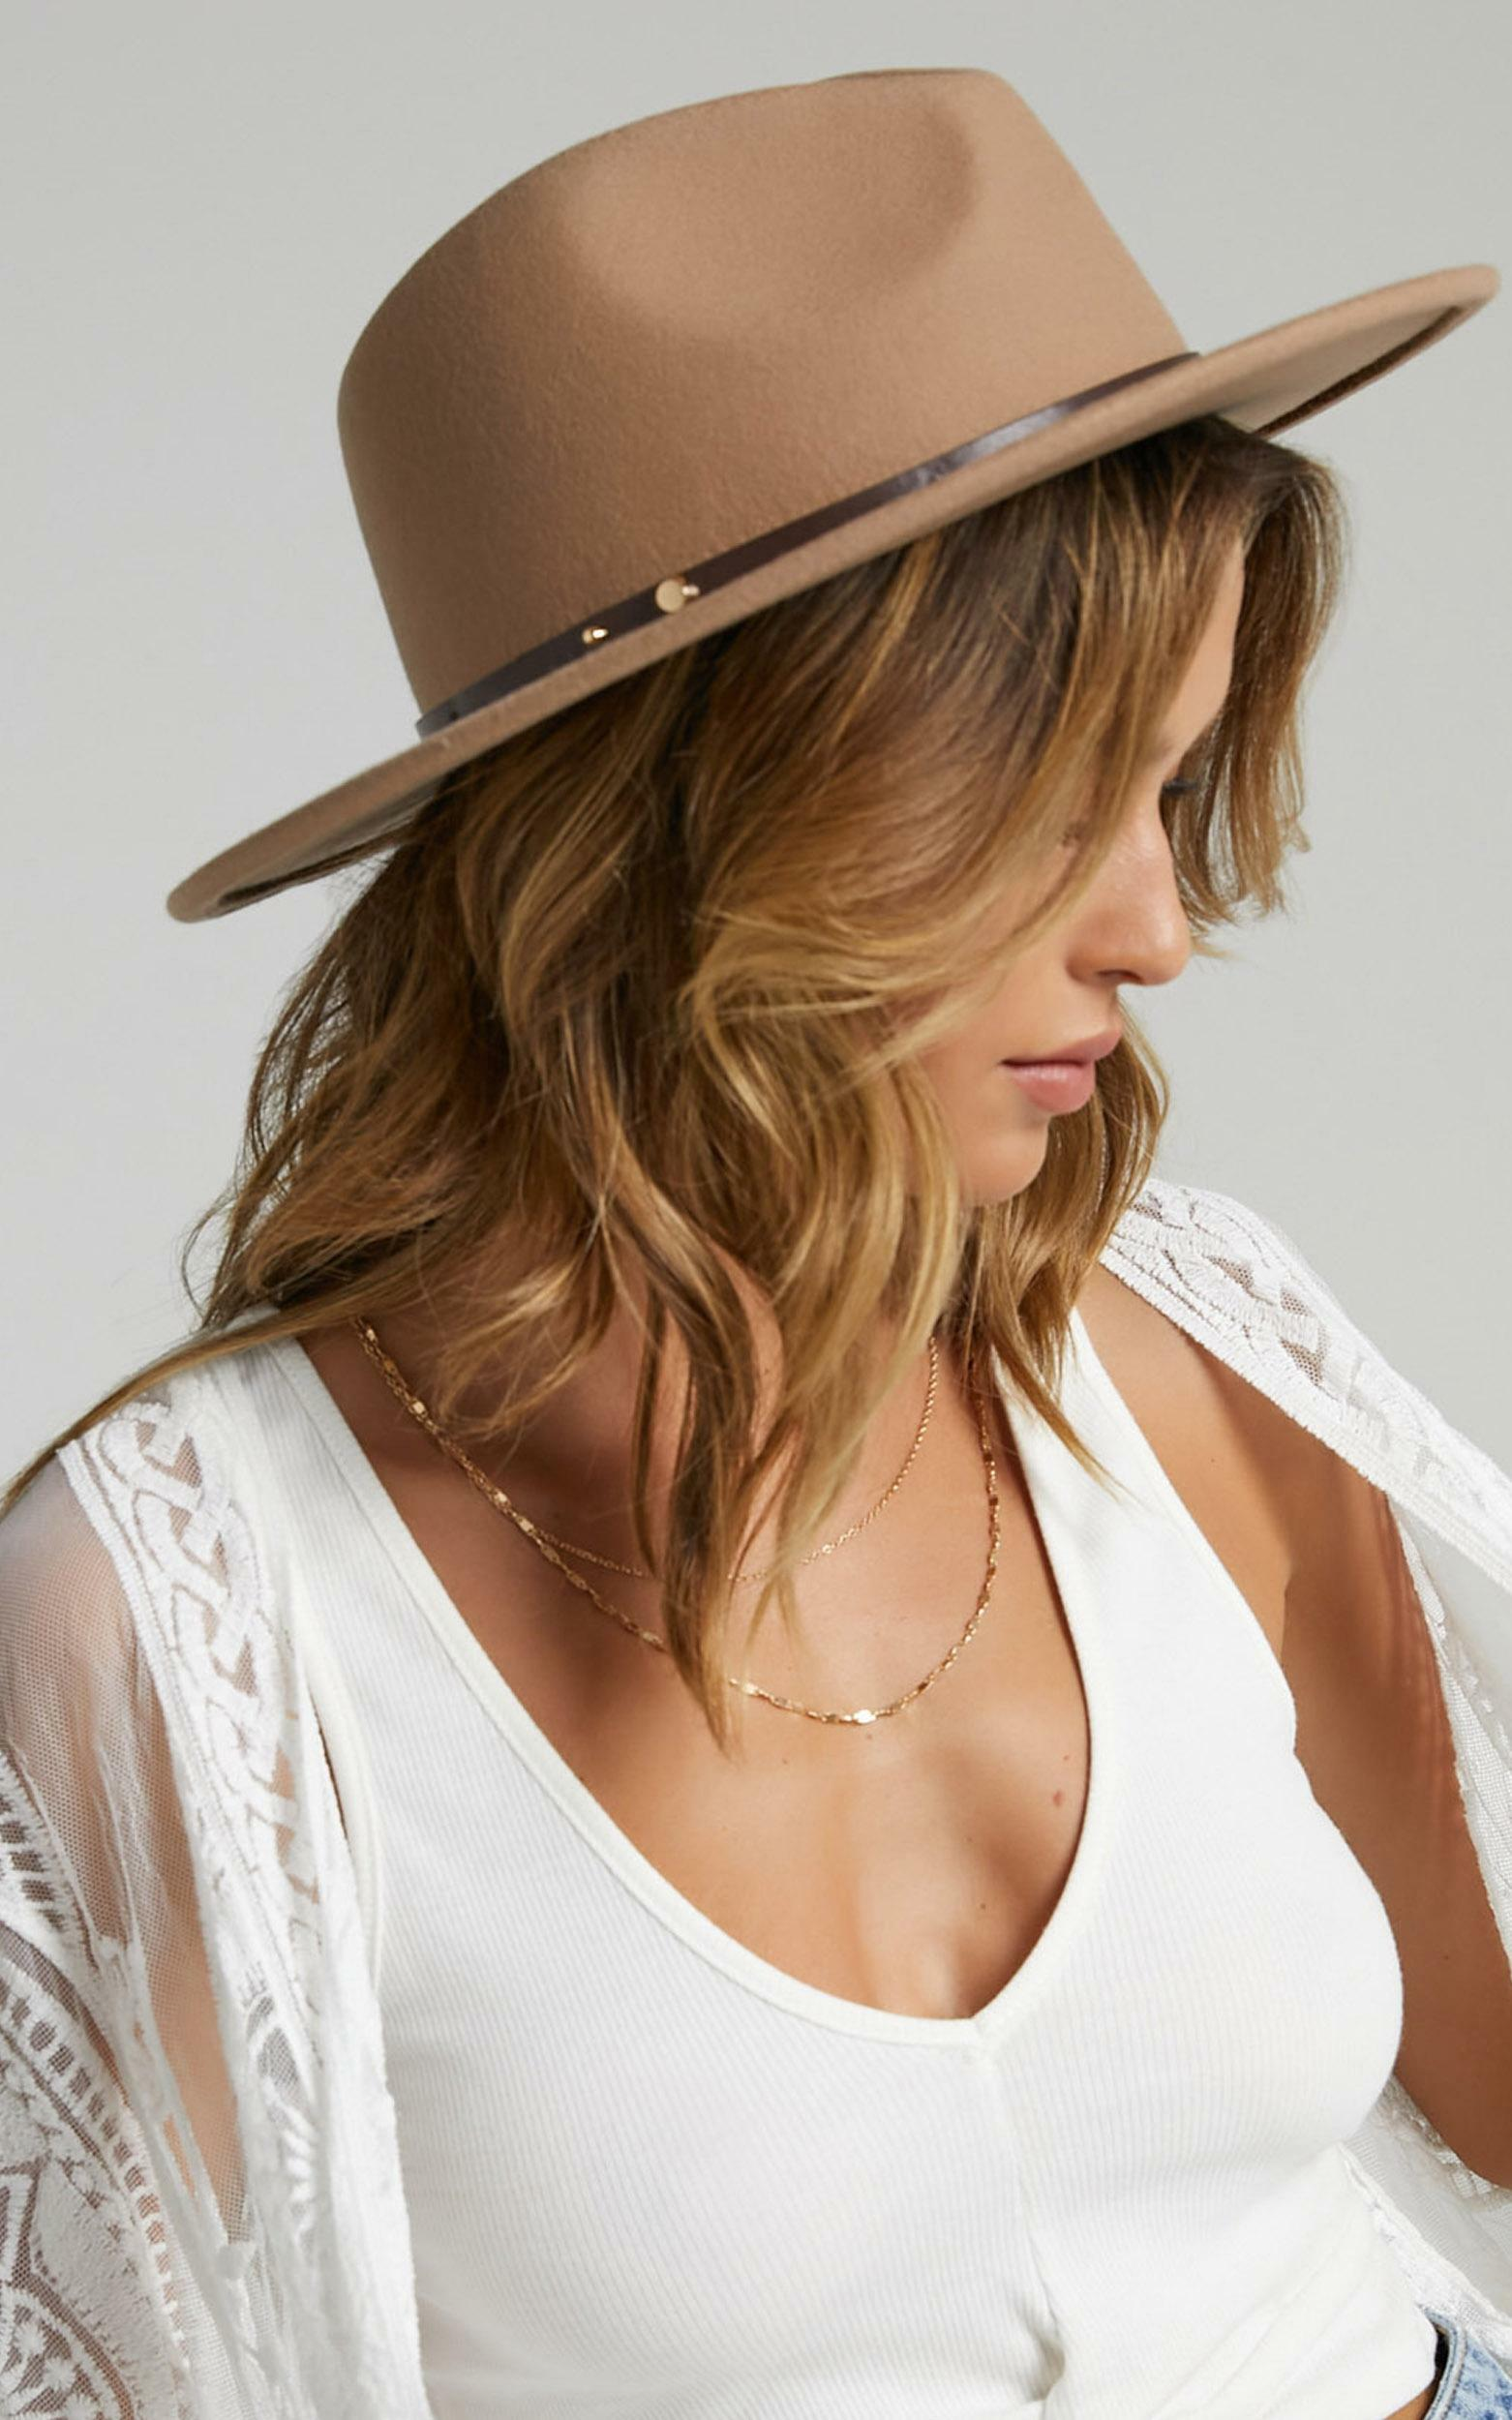 Ace of Something - Oslo Hat in Golden Sand, BRN4, hi-res image number null